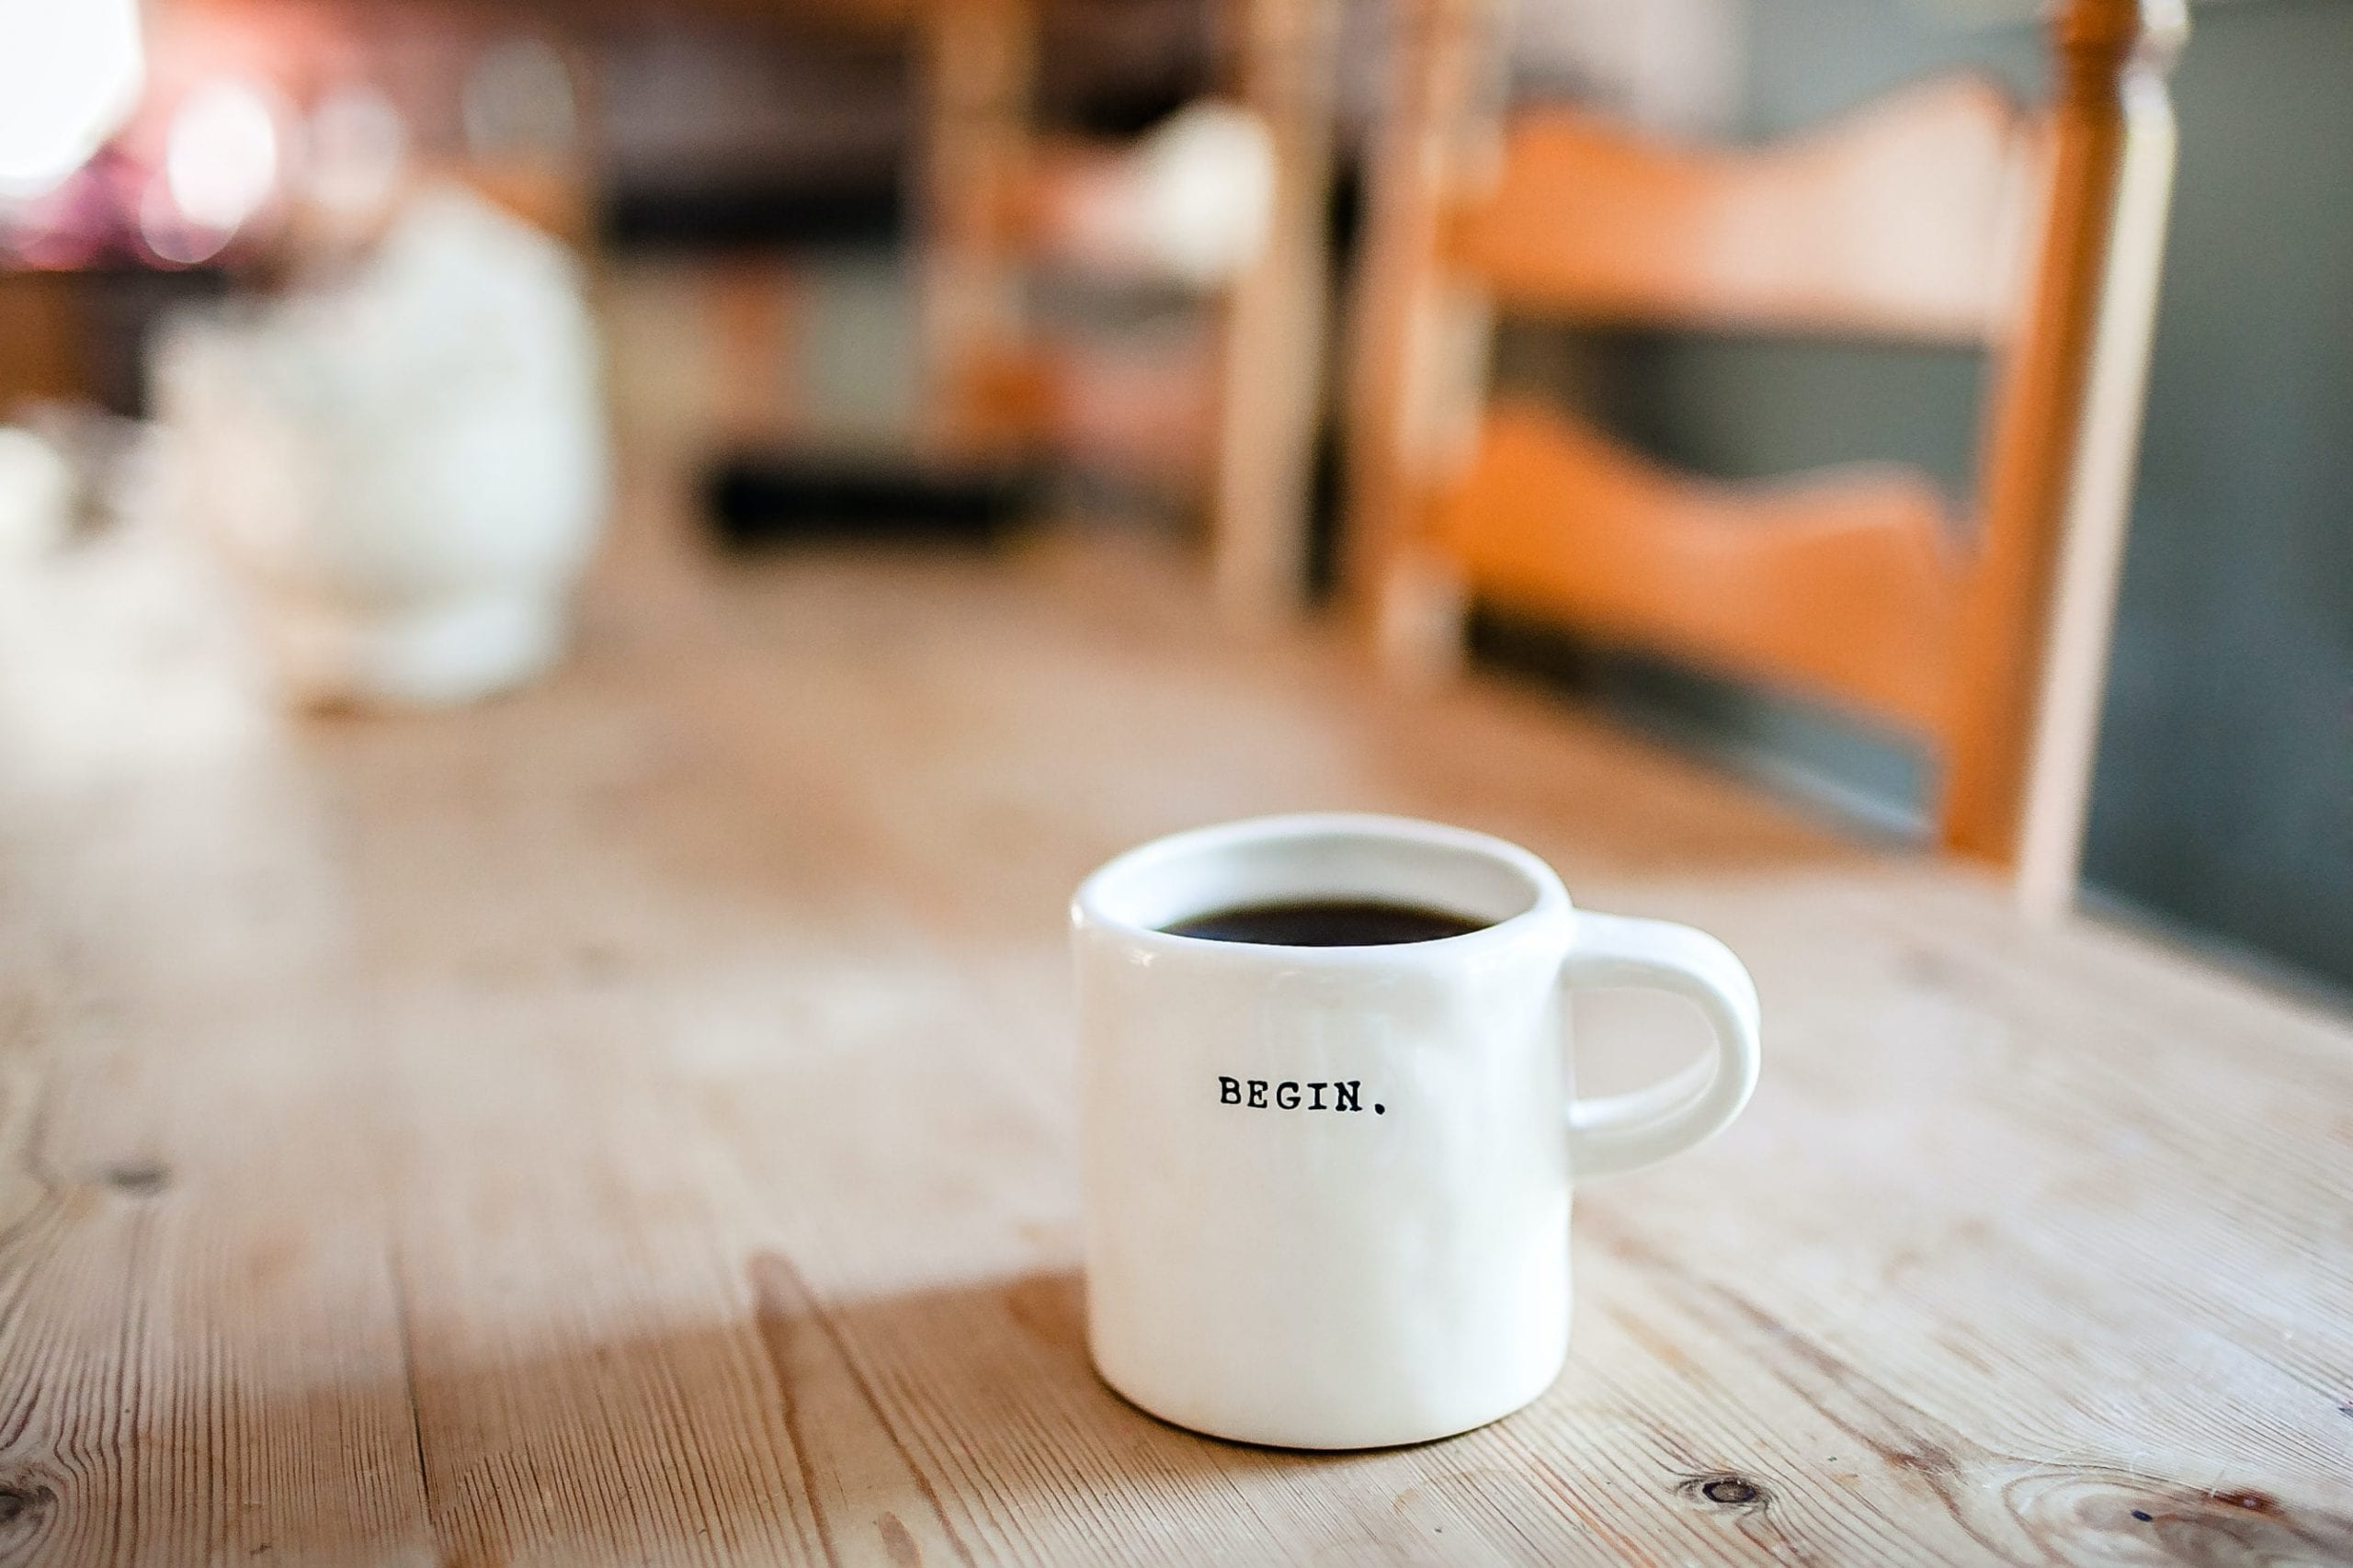 Coffee cup with the words begin on it. Beginning your online career doesn't require previous experience. James Hopkins Coaching can show you how.